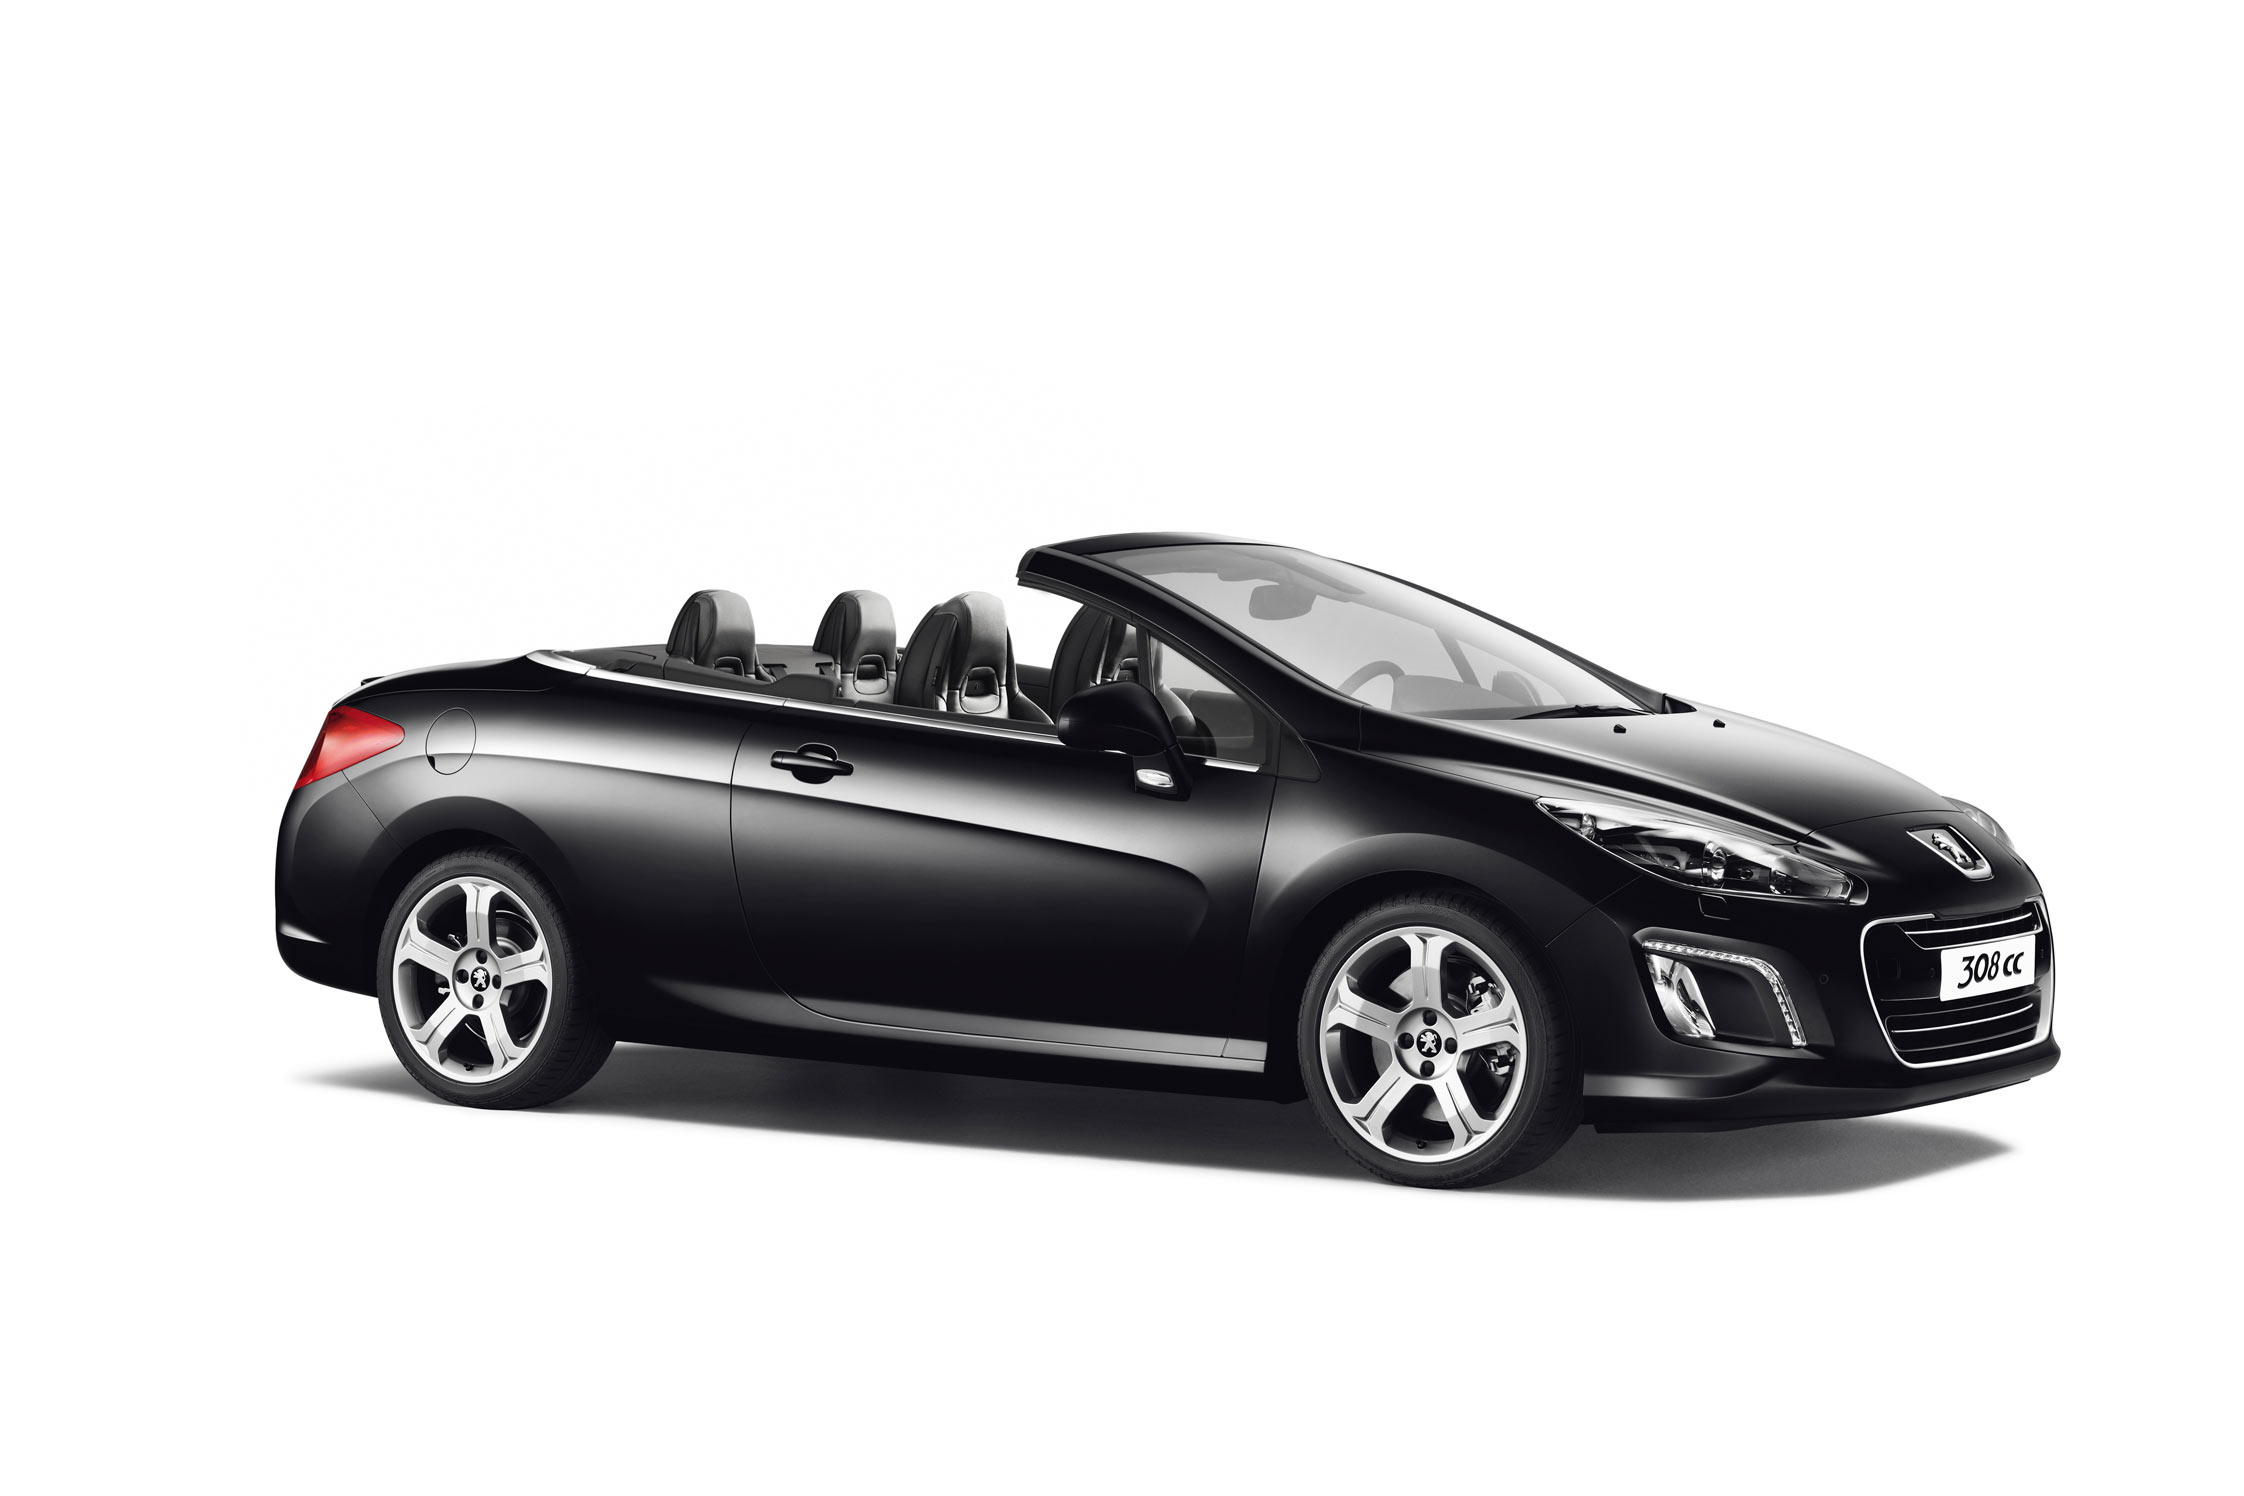 photo peugeot 308 cc 1 6 thp 200ch coup cabriolet 2011 m diatheque. Black Bedroom Furniture Sets. Home Design Ideas